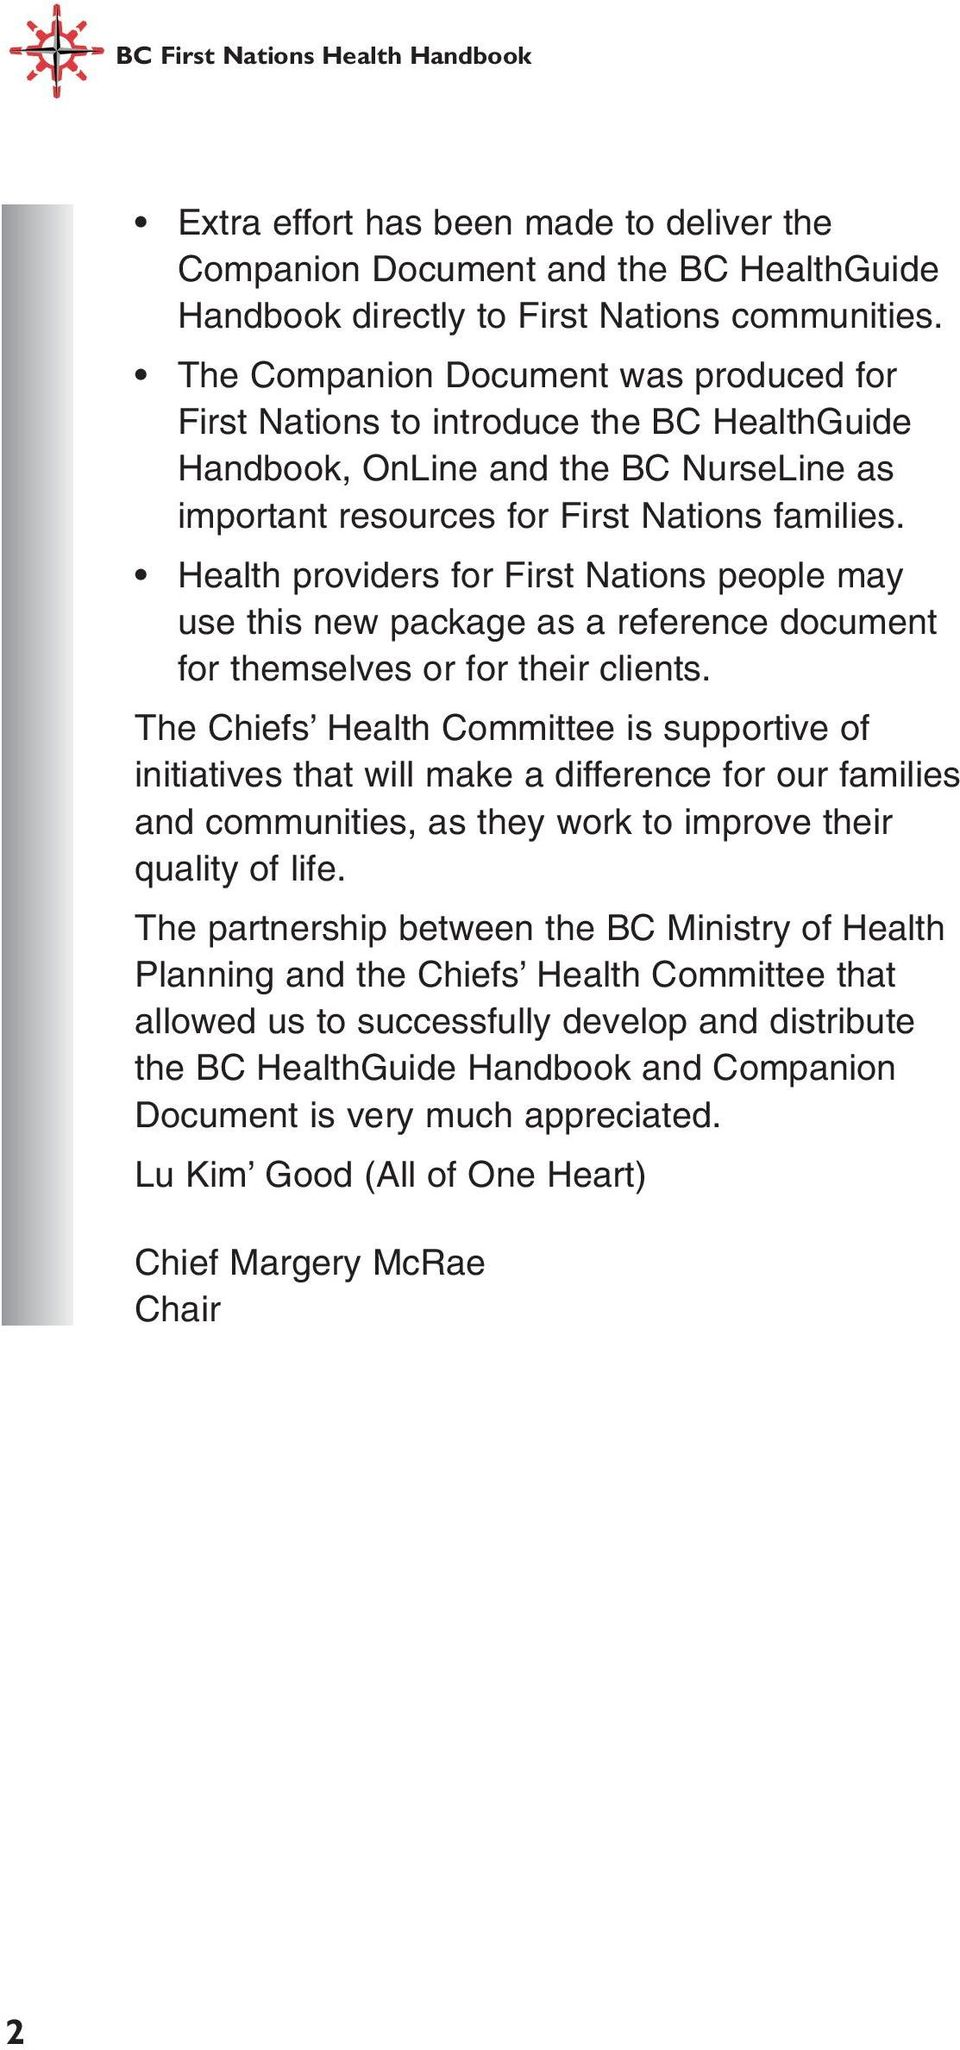 Health providers for First Nations people may use this new package as a reference document for themselves or for their clients.